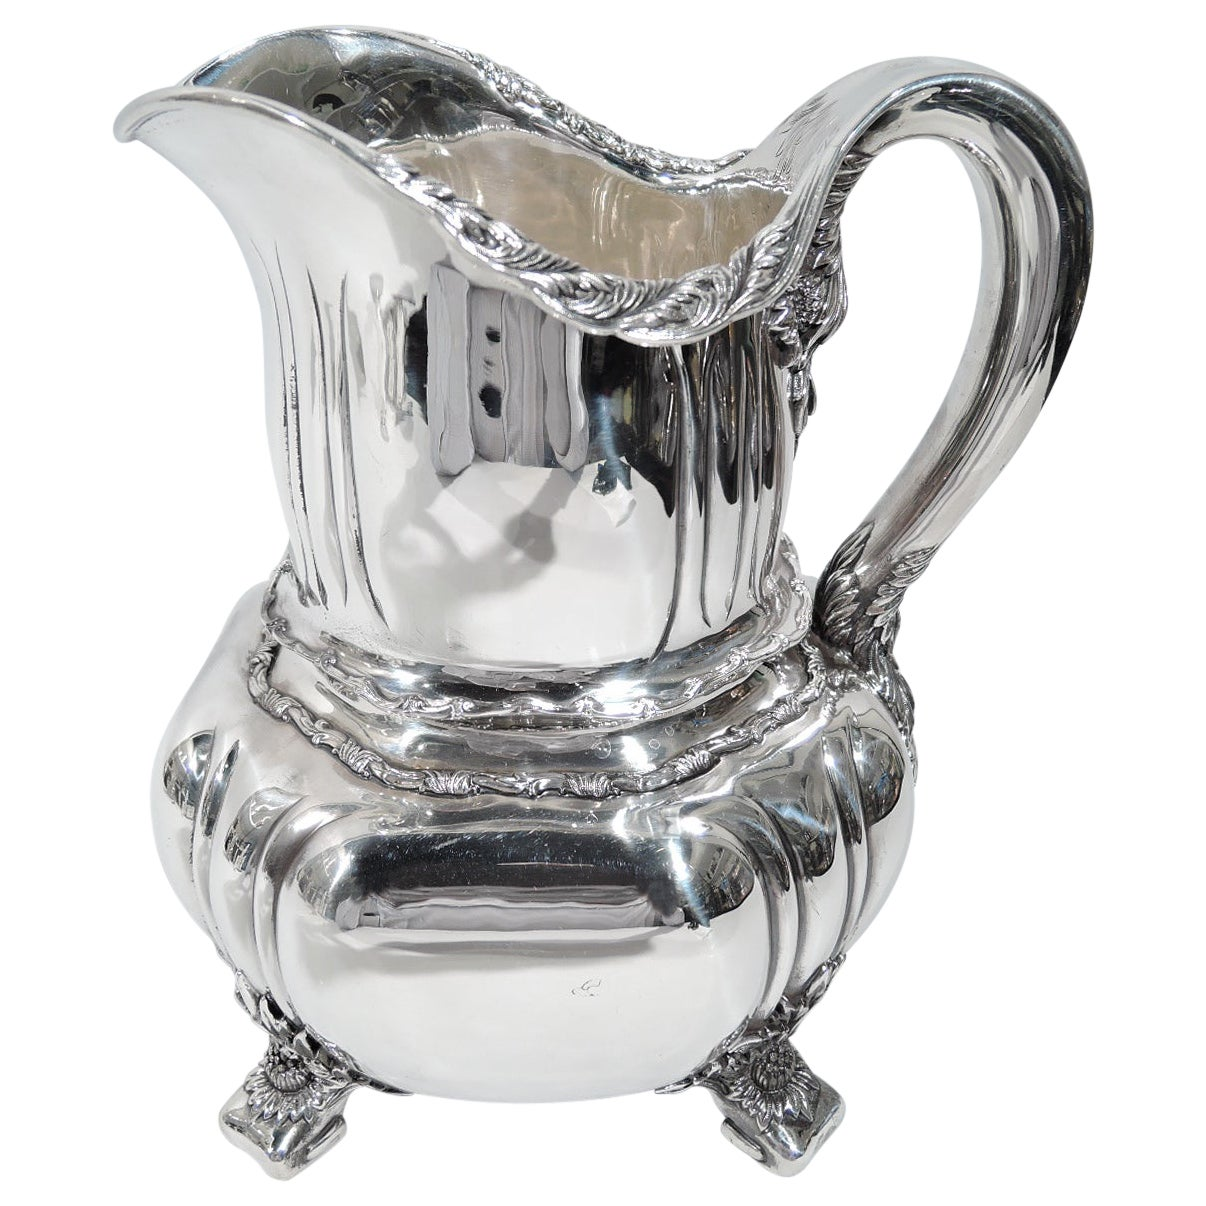 Antique Tiffany Chrysanthemum Sterling Silver Water Pitcher